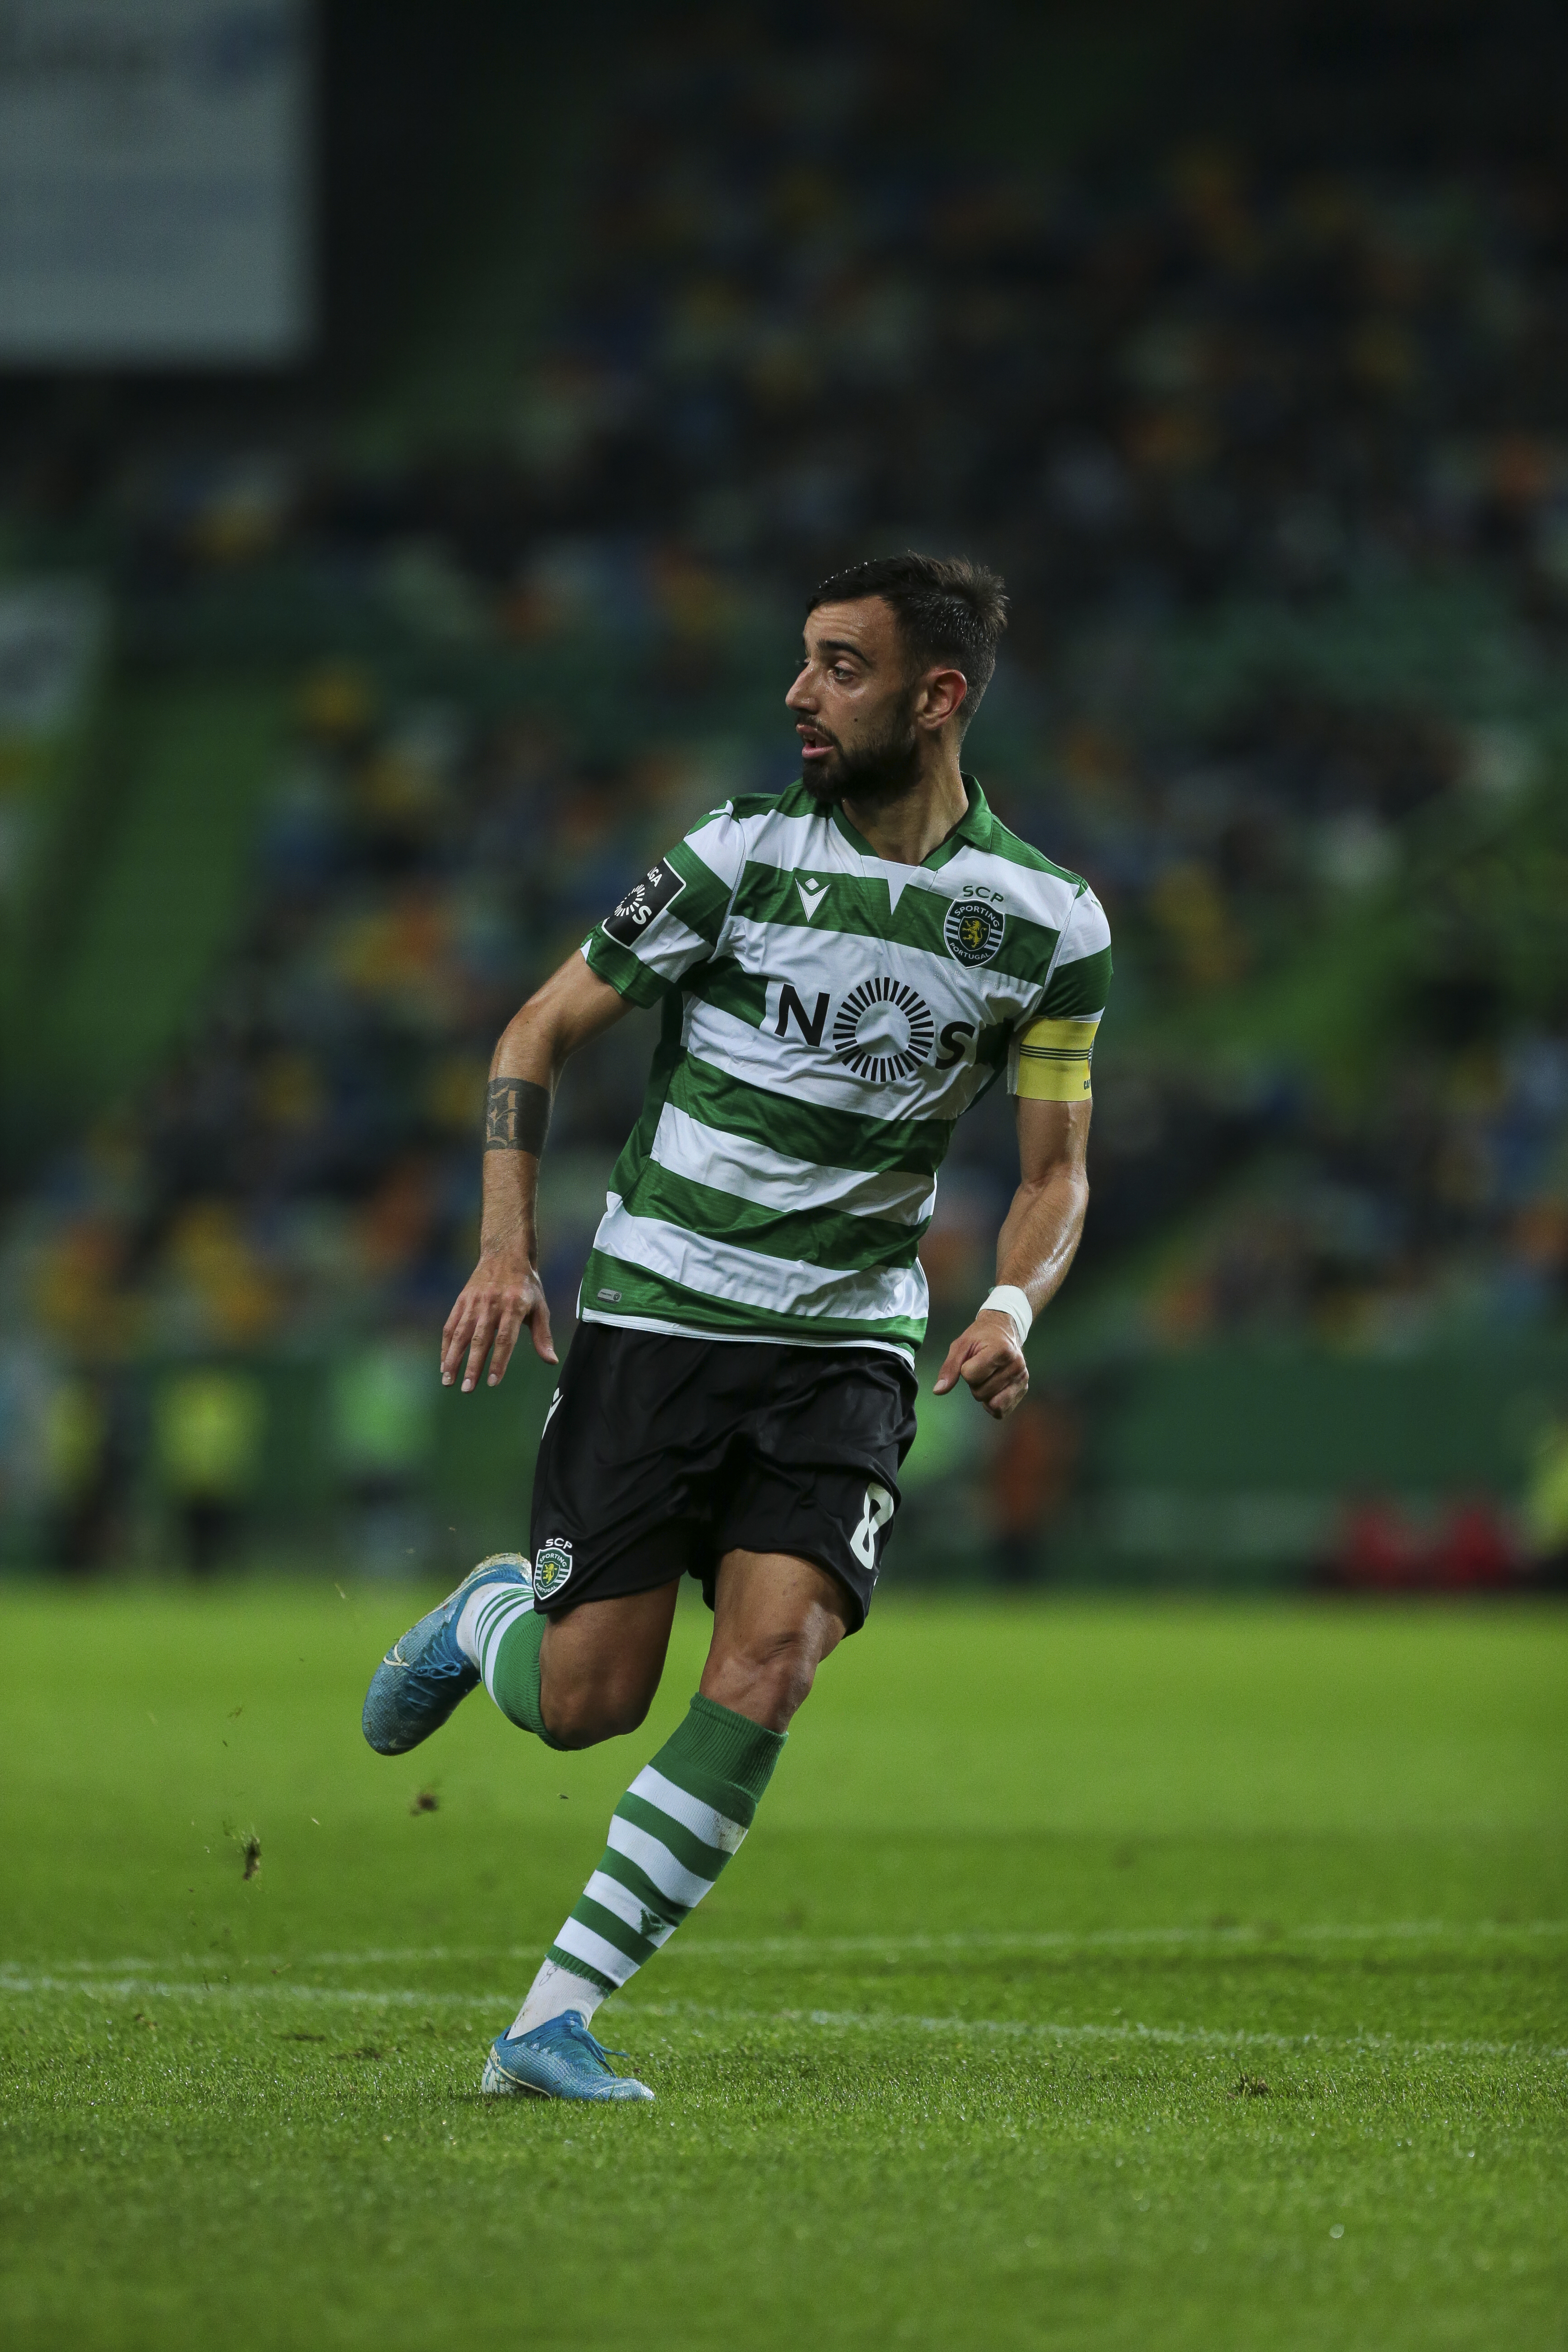 Sporting CP and Moreirense FC - Premier League 2019/20